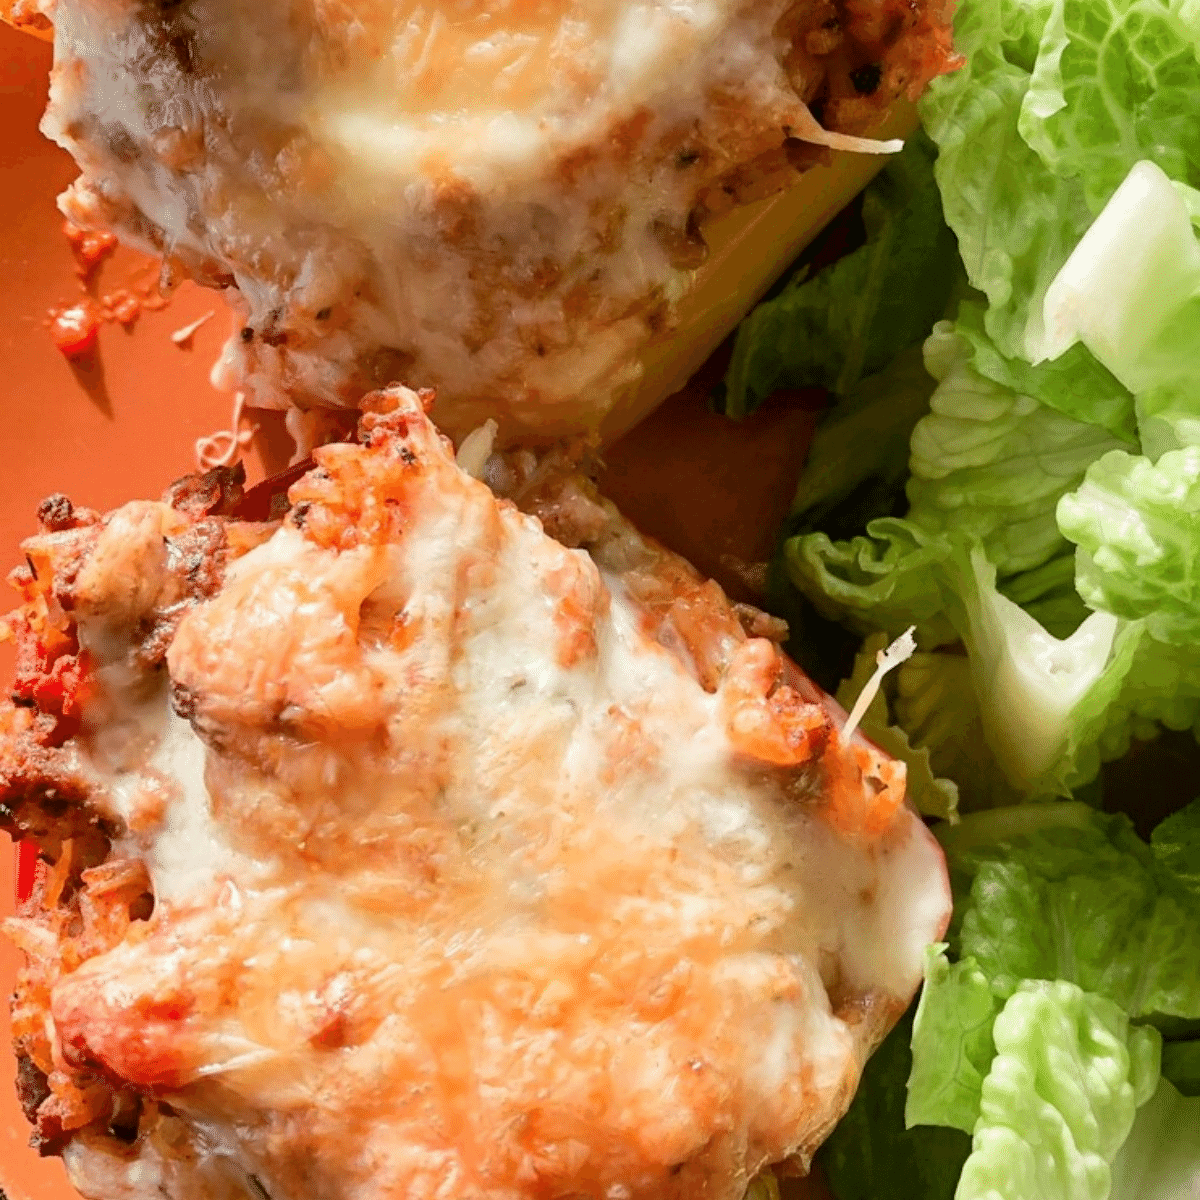 Baked stuffed peppers served with a side of crisp green salad